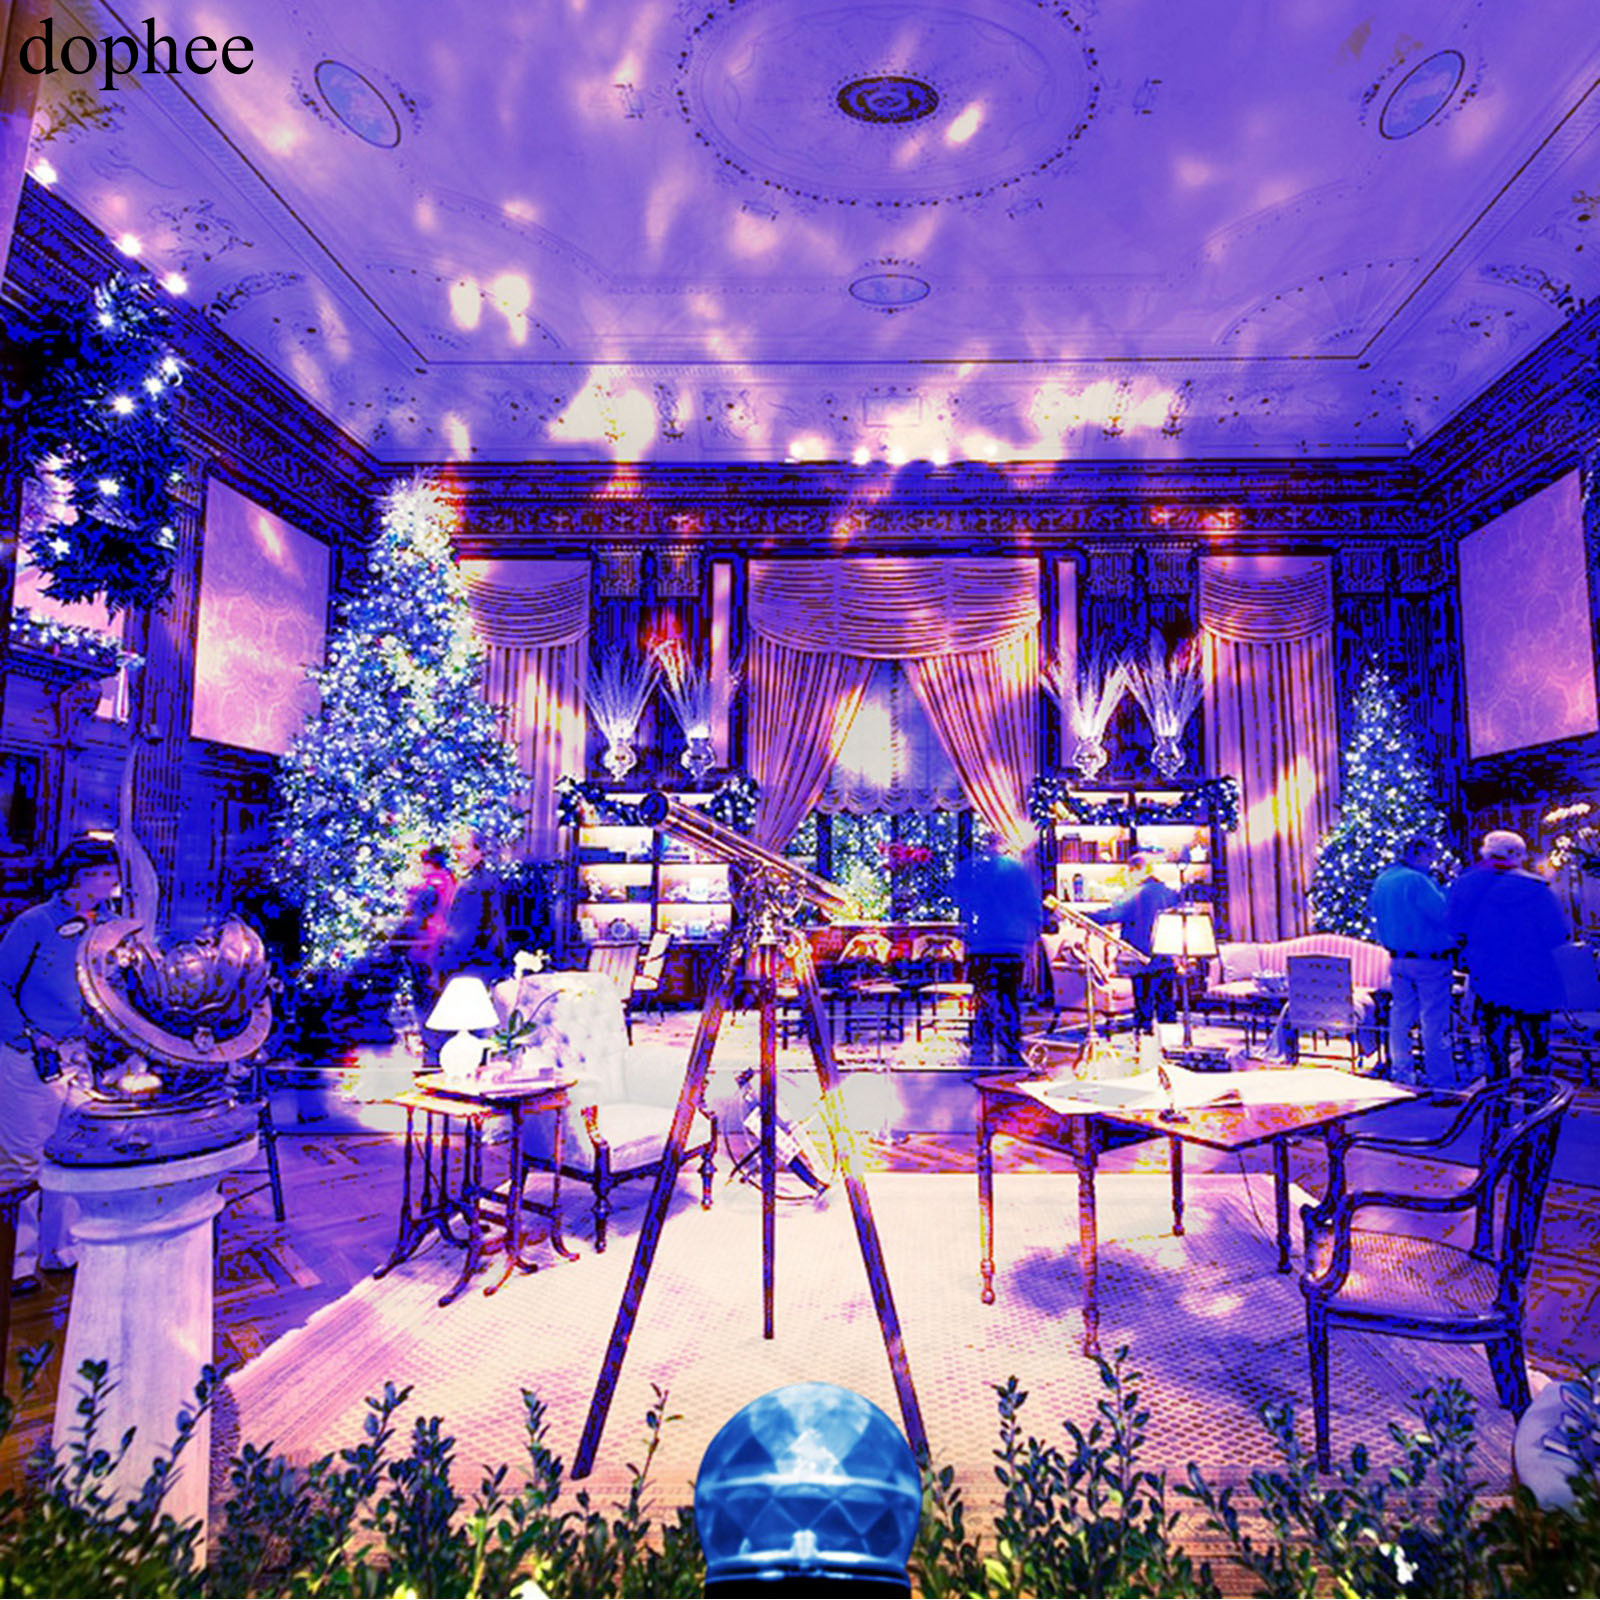 dophee Outdoor Projector Lights IP44 Waterproof and Warm + blue colour LED for Christmas Birthday Party, Holiday decoration.